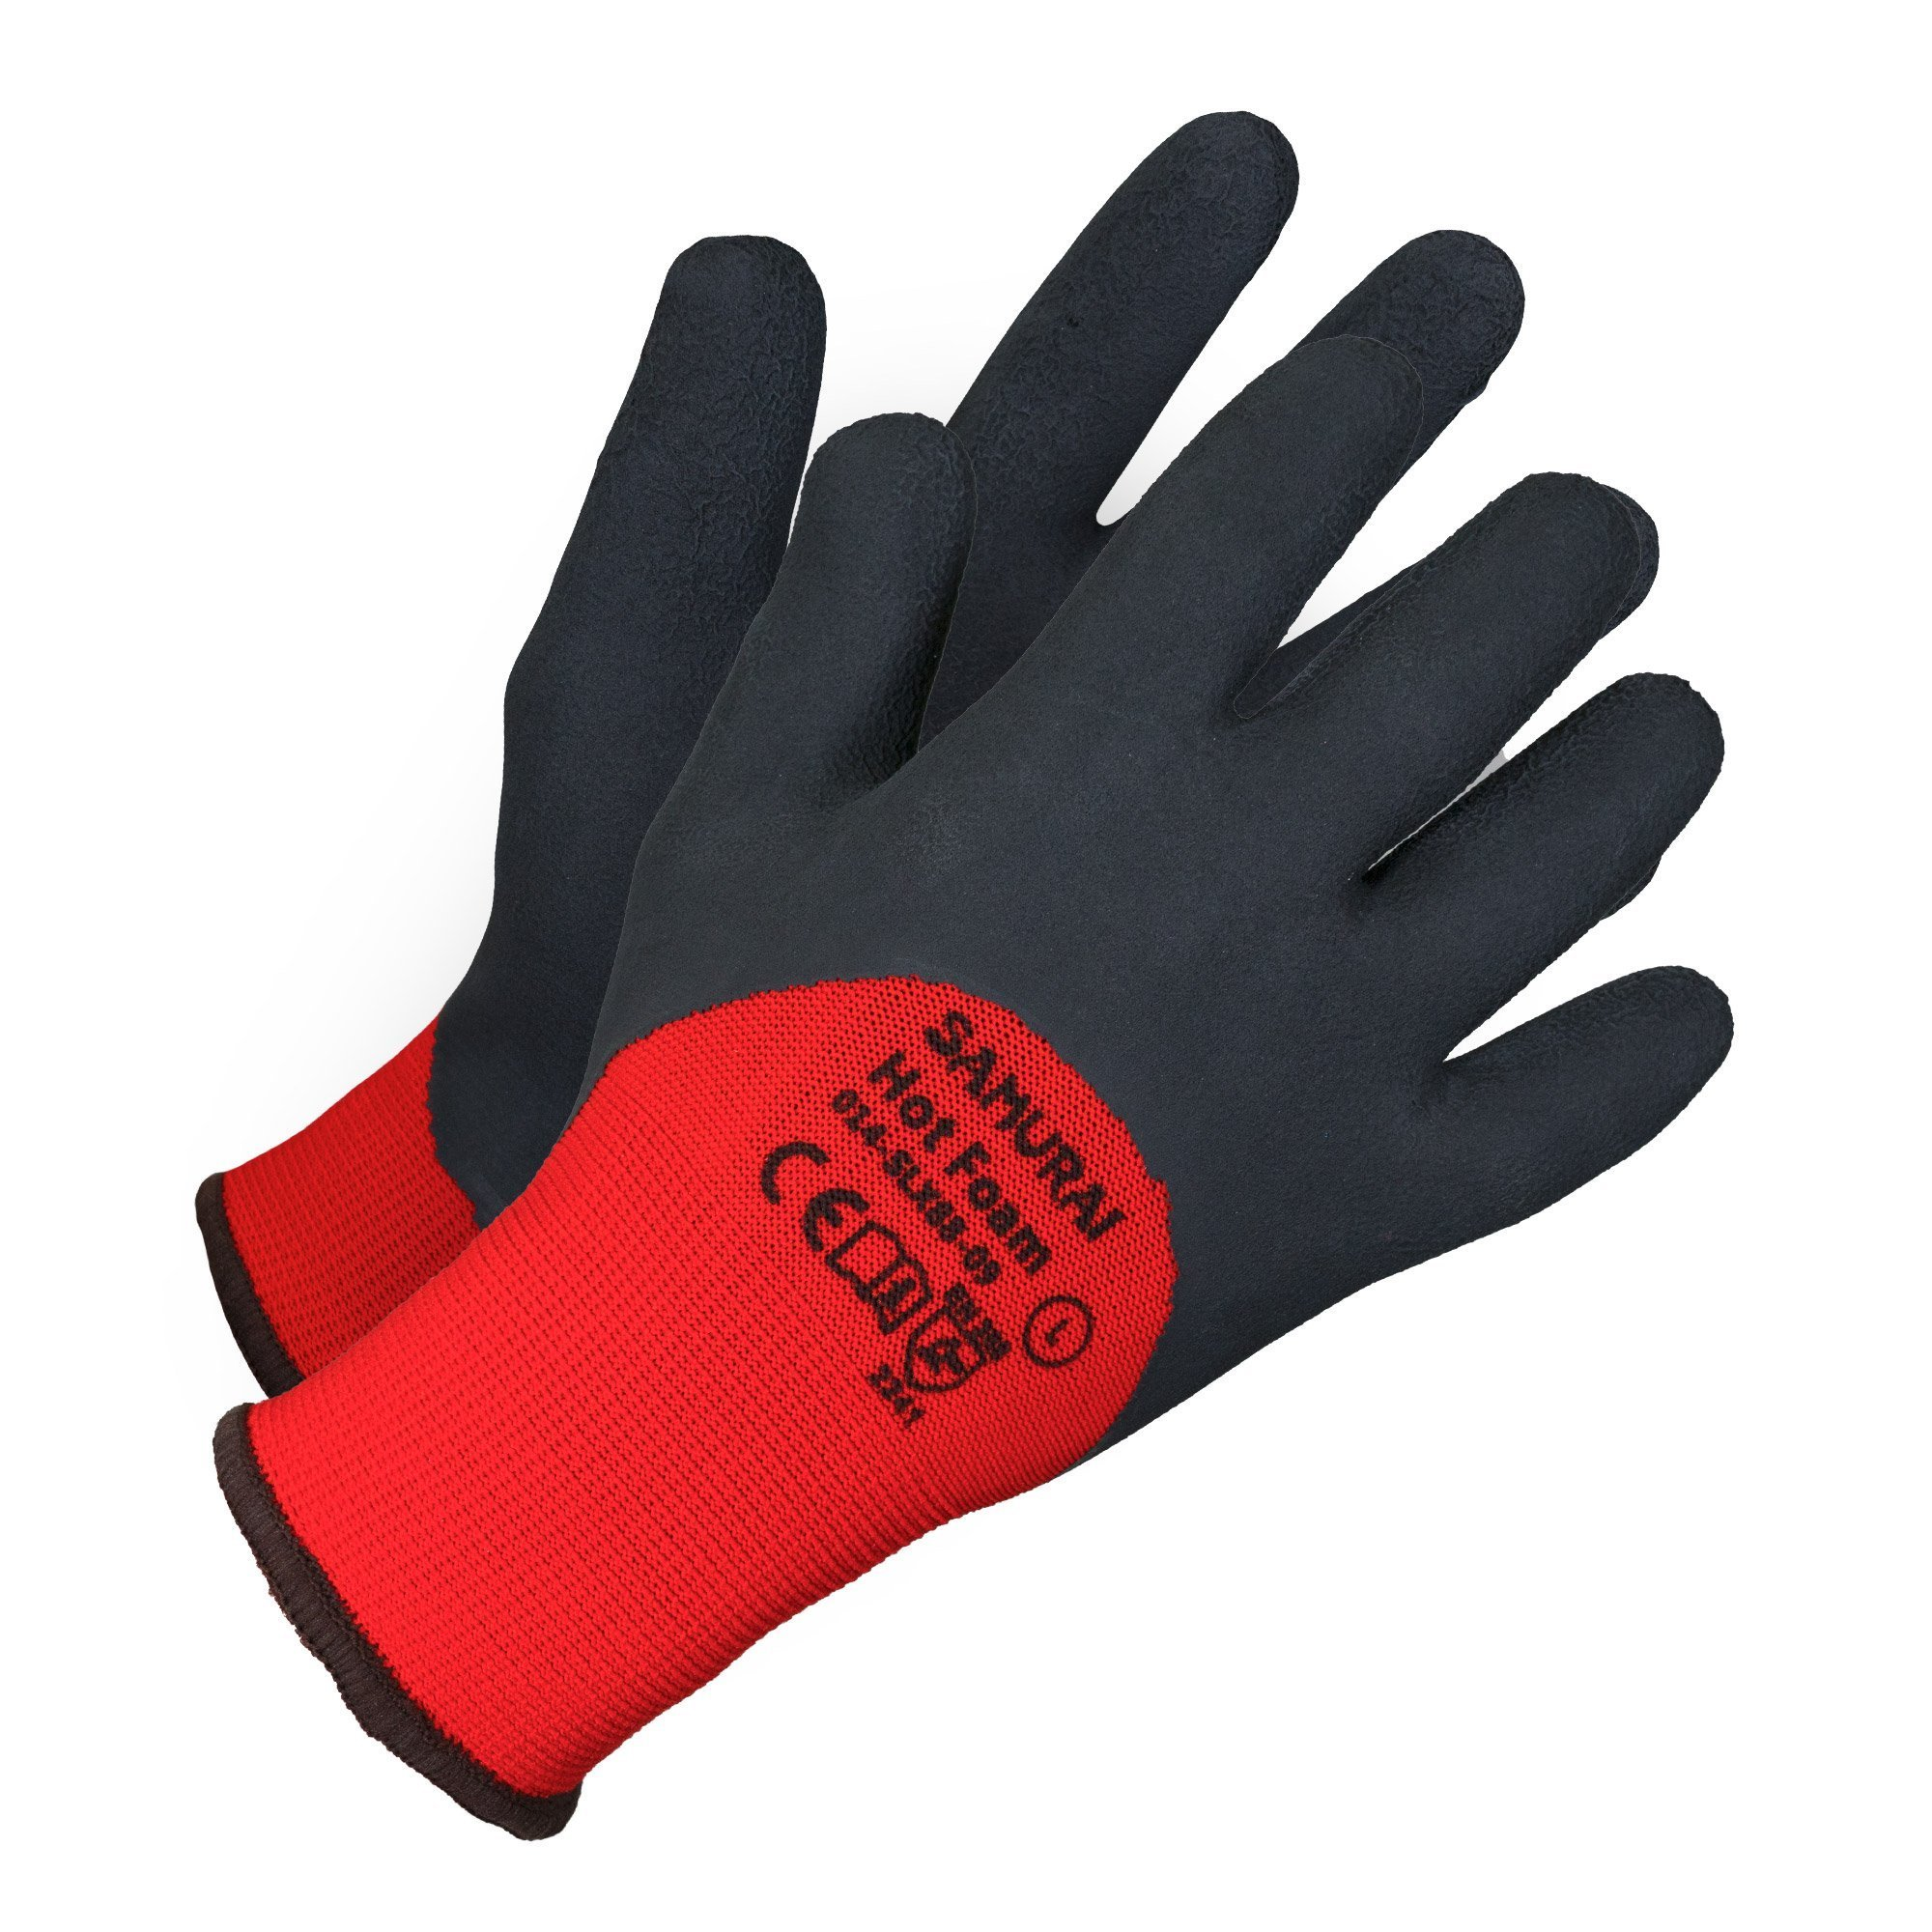 Gloves - Samurai Ice (Extra Large, Size 10)